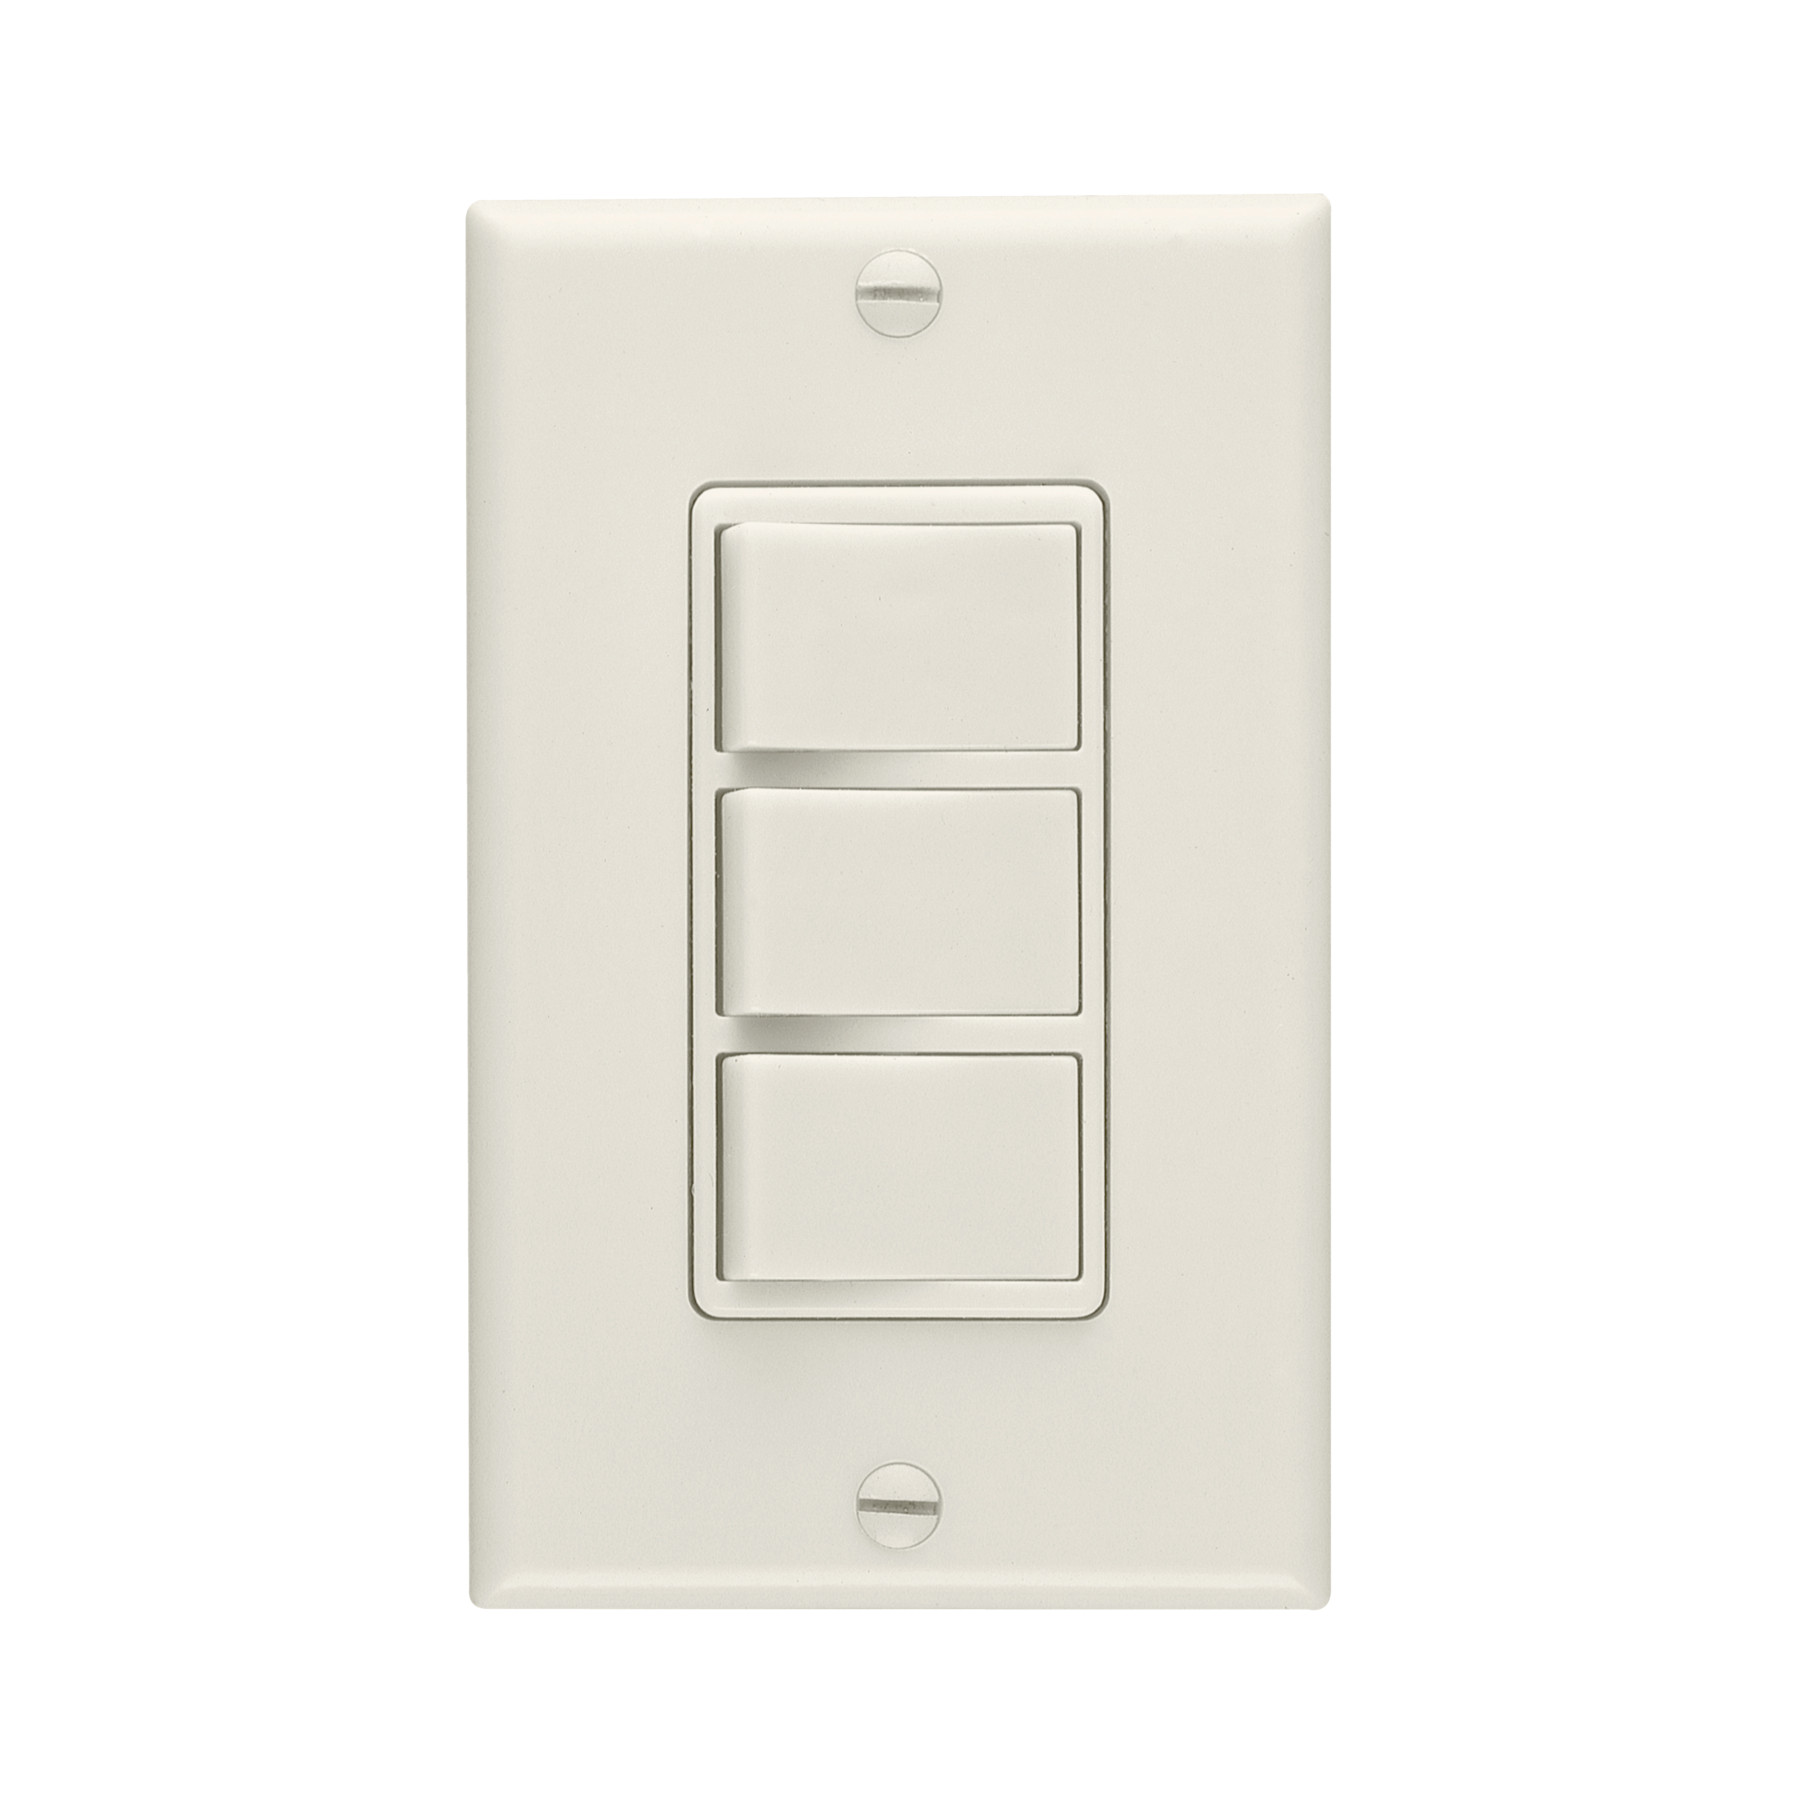 Broan-NuTone® 3-Function Control. Ivory